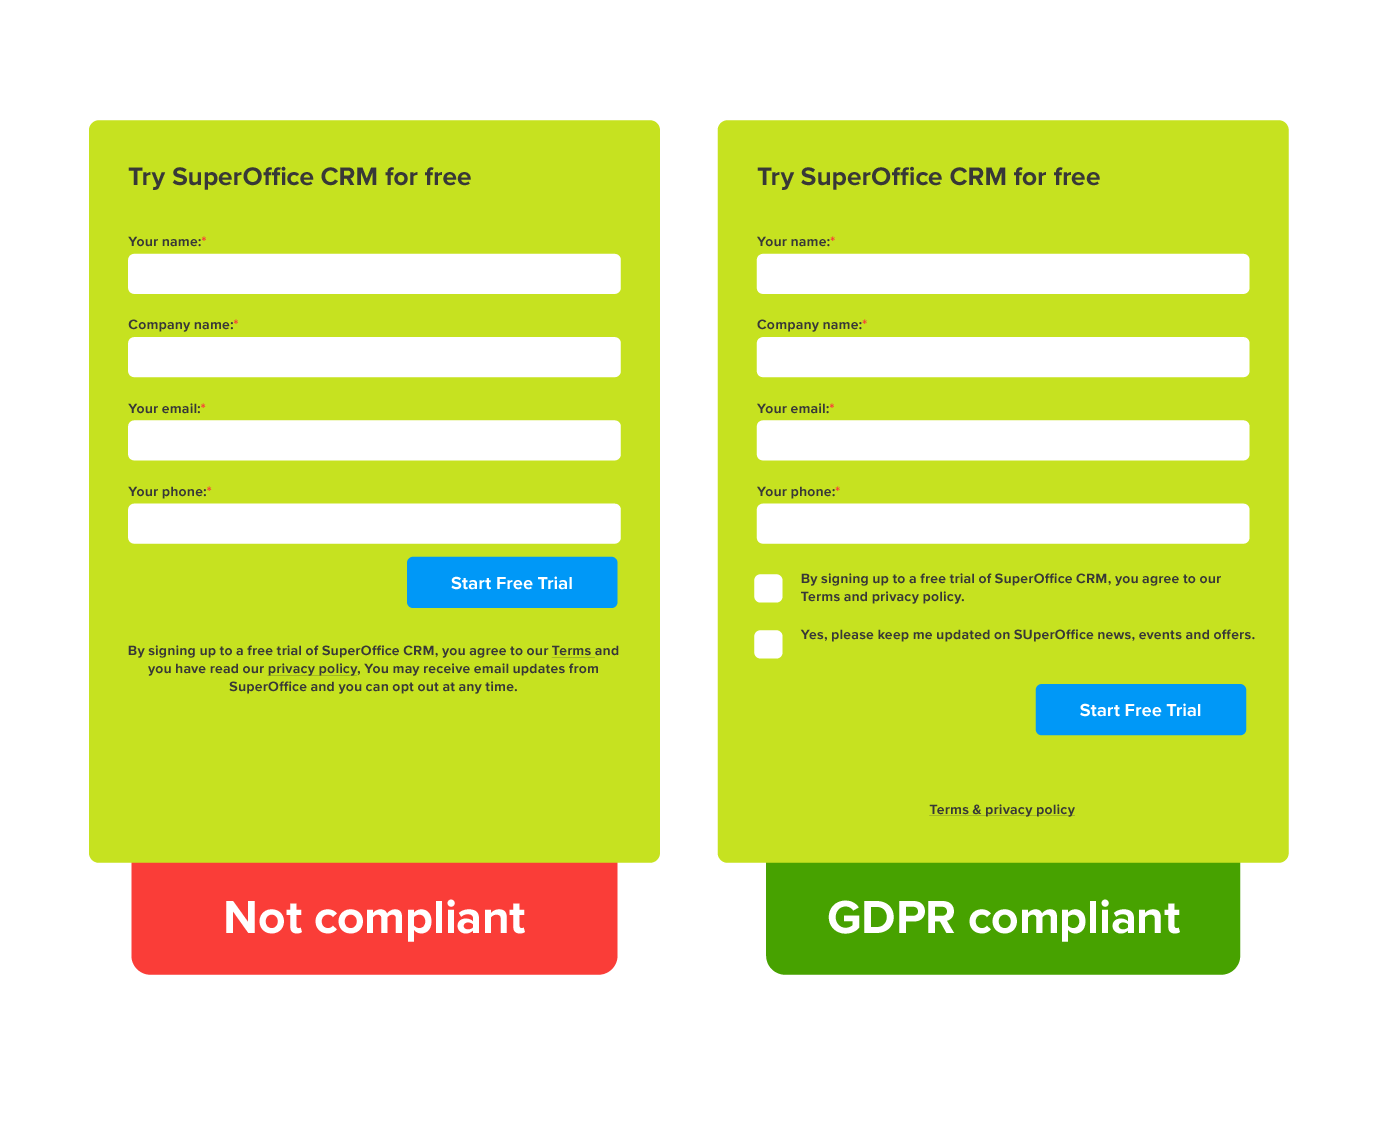 GDPR compliant forms on website